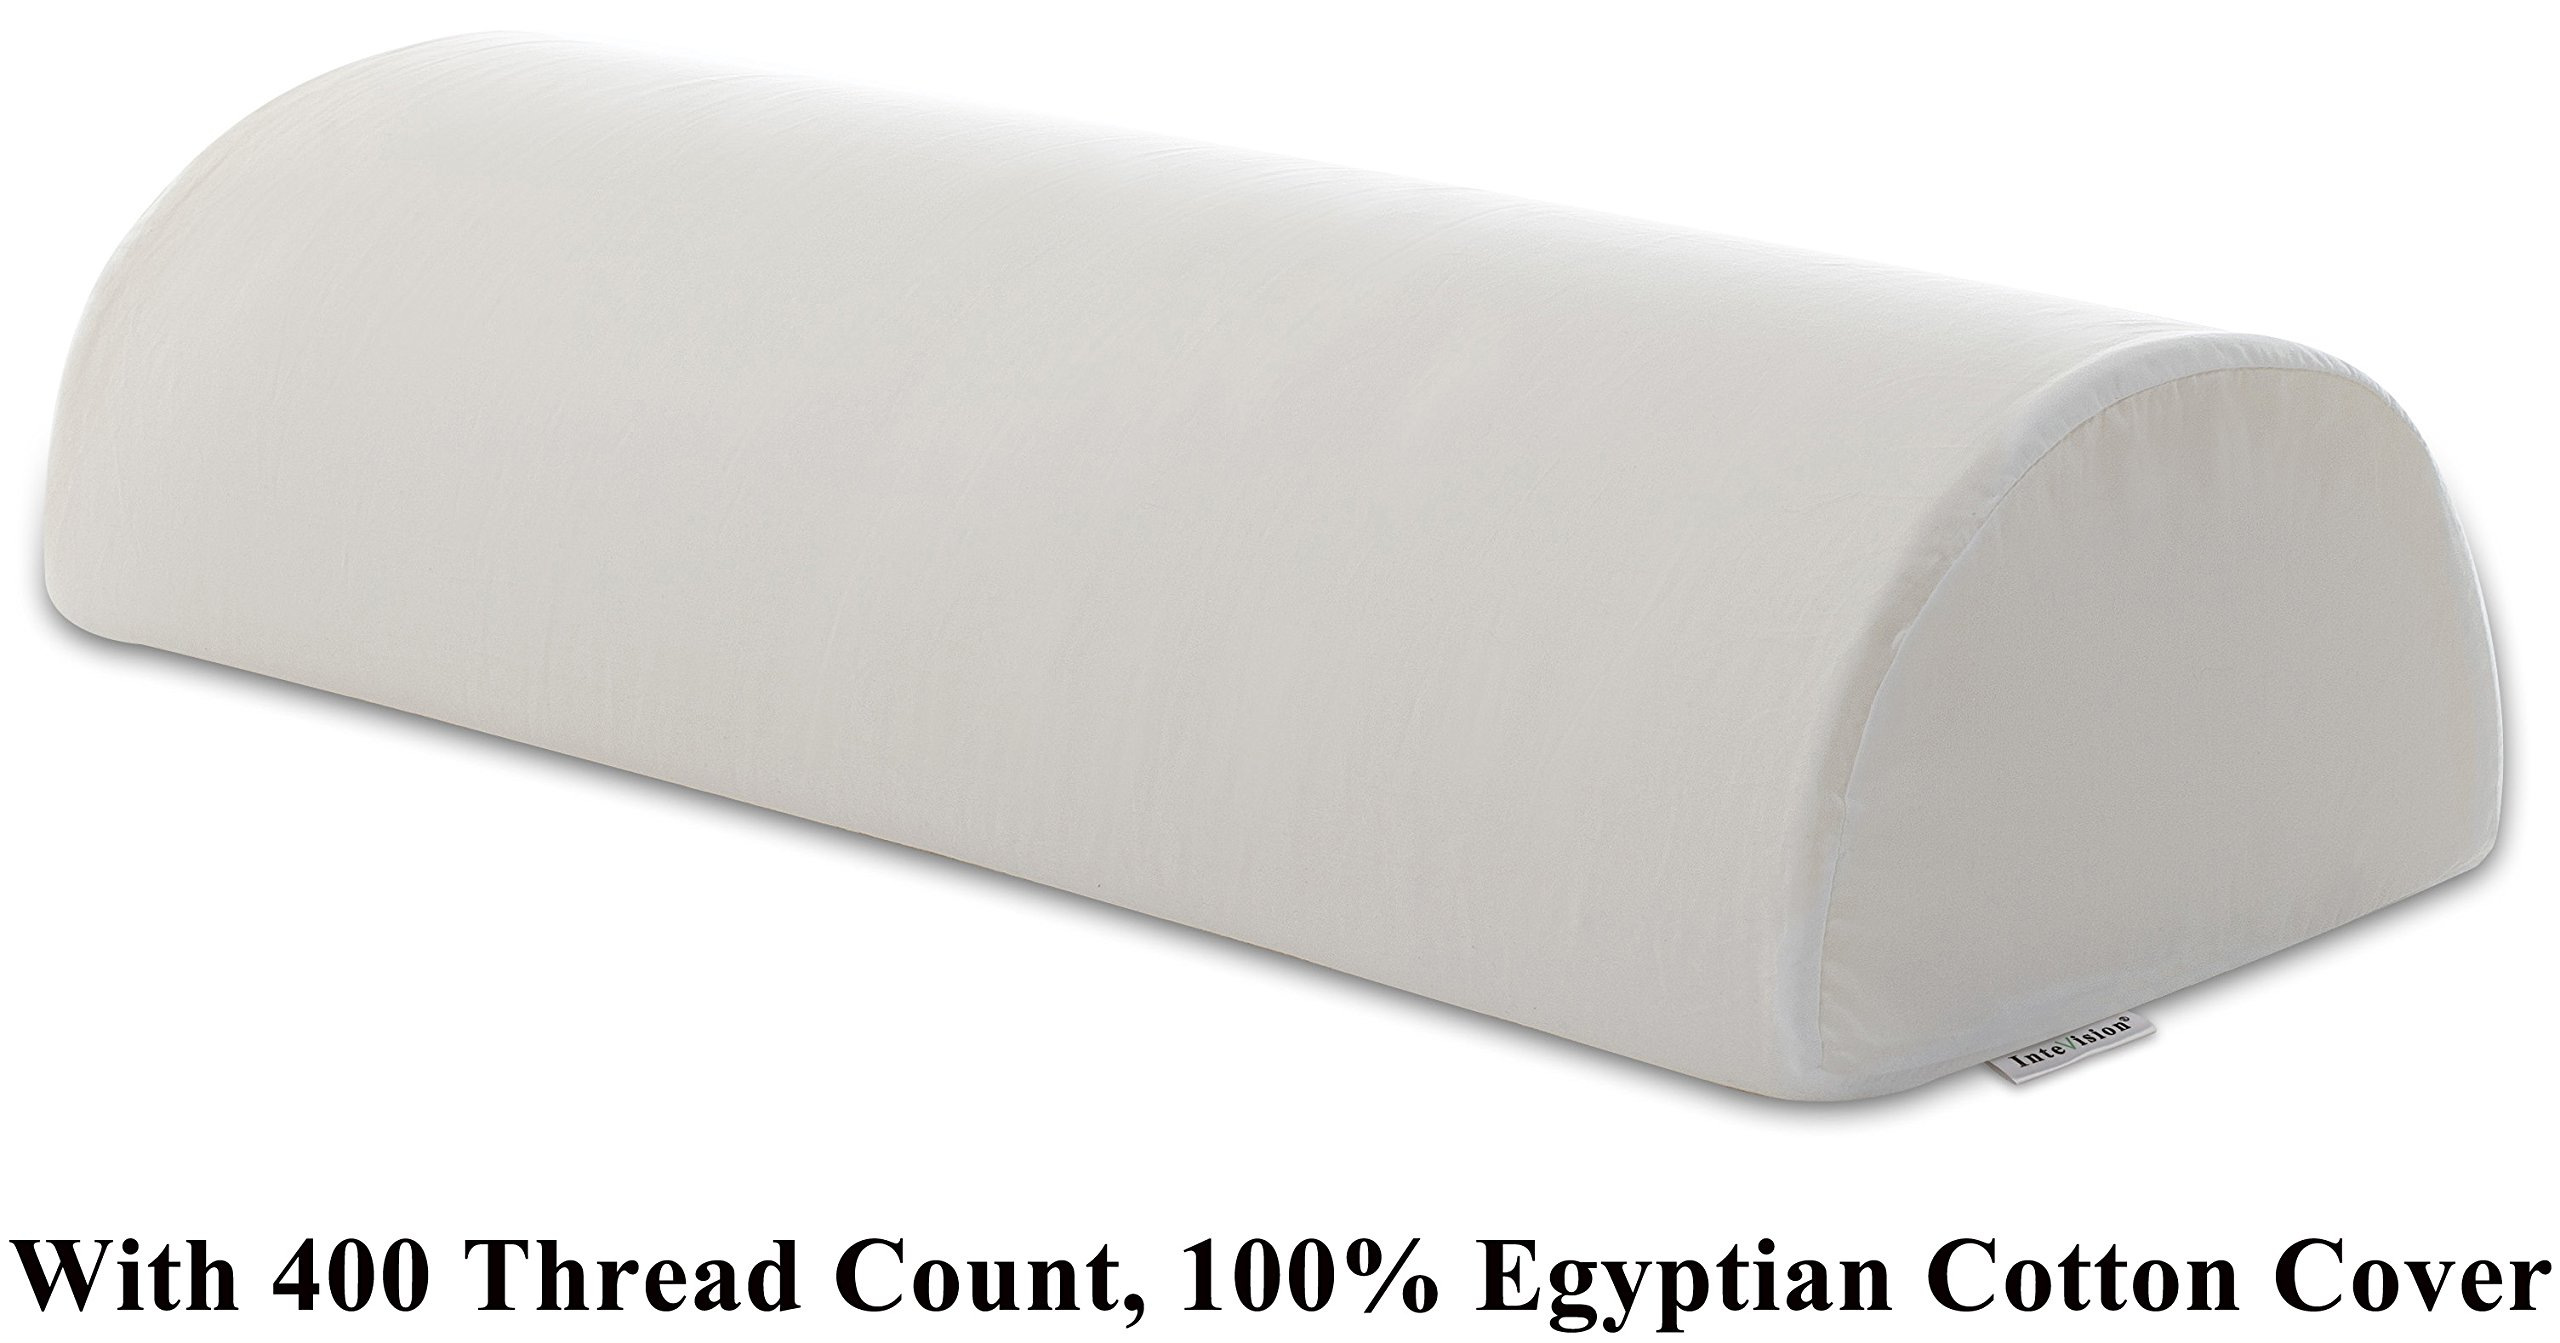 InteVision Four Position Support Pillow (20.5'' x 8'' x 4.5'') with 400 Thread Count, 100% Egyptian Cotton Cover